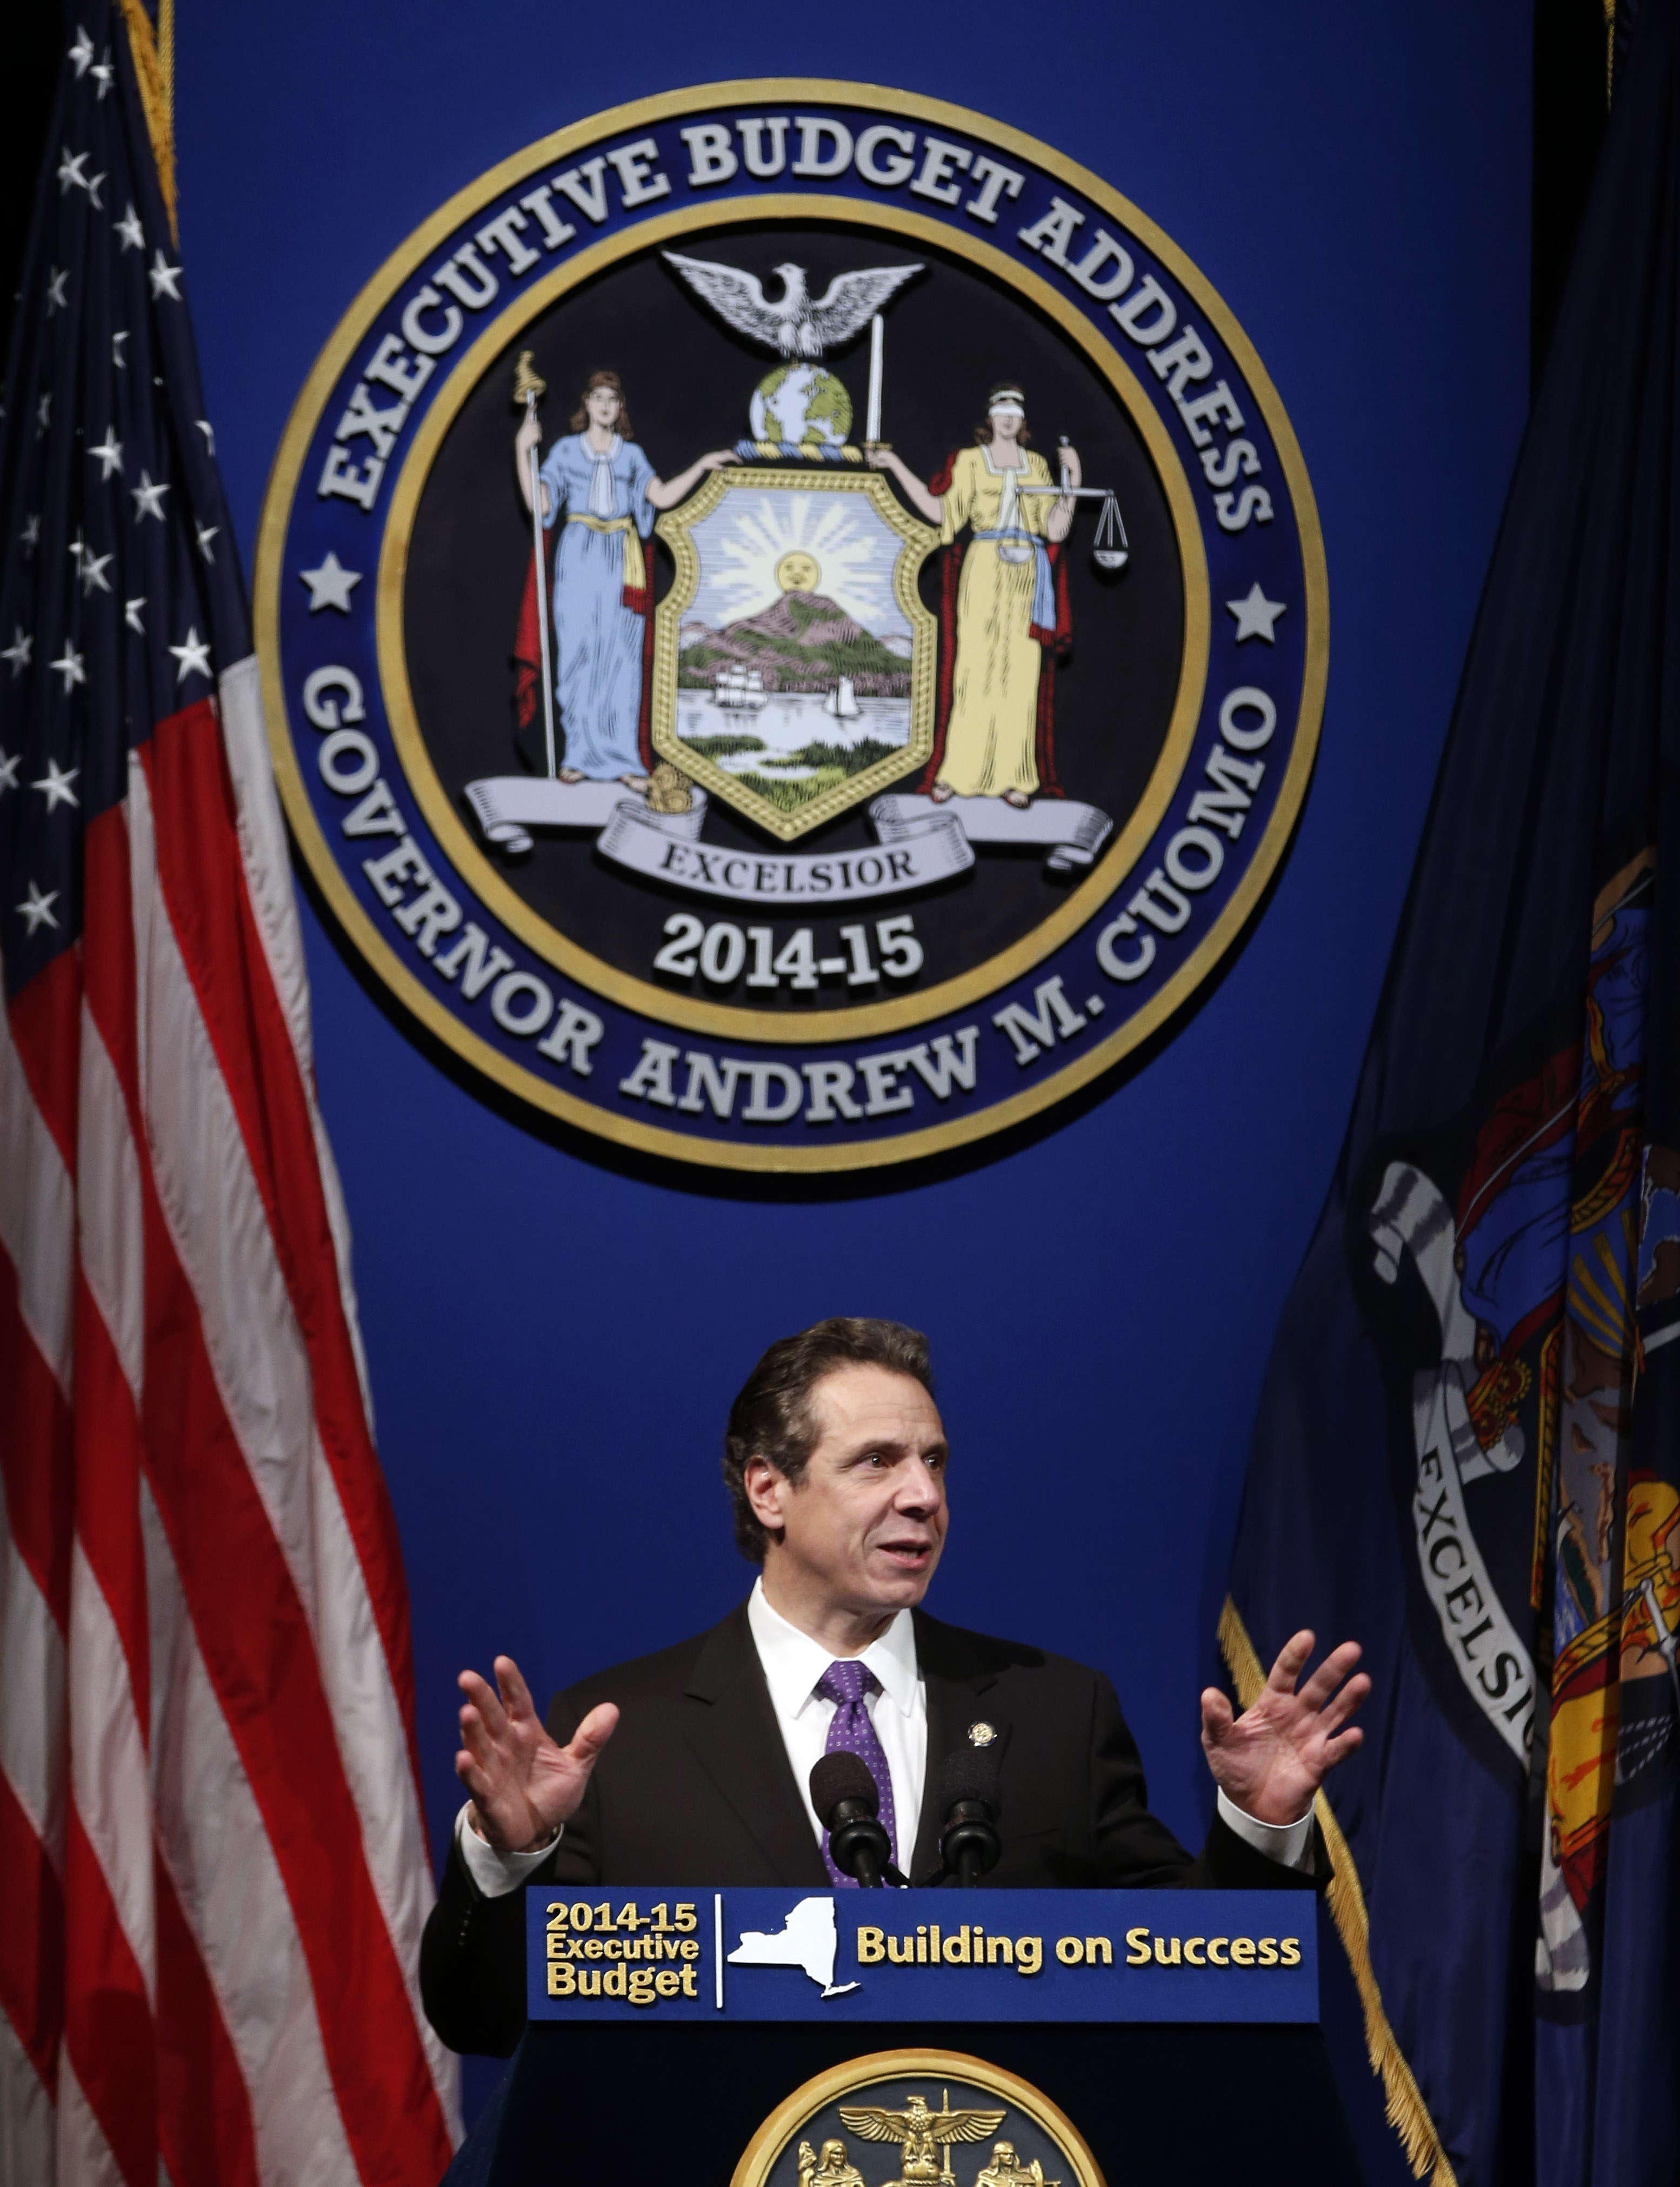 New York Gov. Andrew Cuomo presents his 2014-15 executive budget proposal at the Hart Theatre on Tuesday, Jan. 21, 2014, in Albany, N.Y. (AP Photo/Mike Groll)